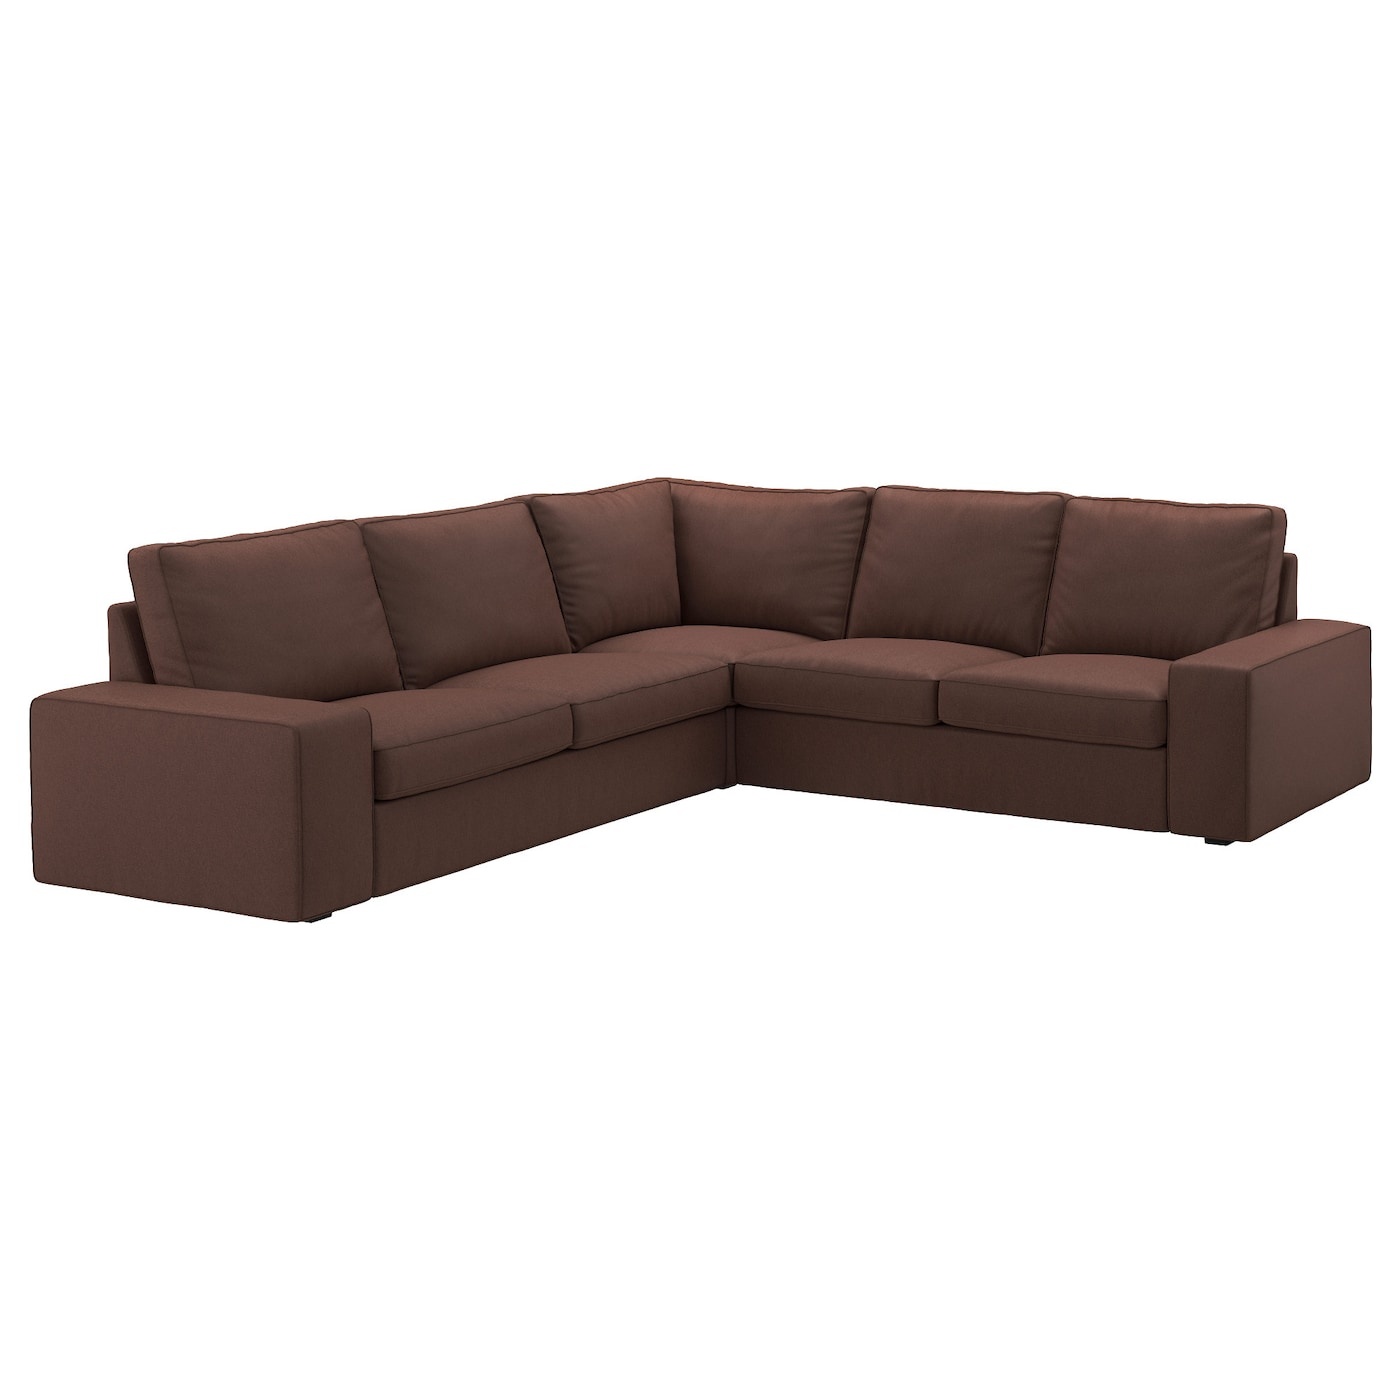 kivik corner sofa 2 2 borred dark brown ikea. Black Bedroom Furniture Sets. Home Design Ideas